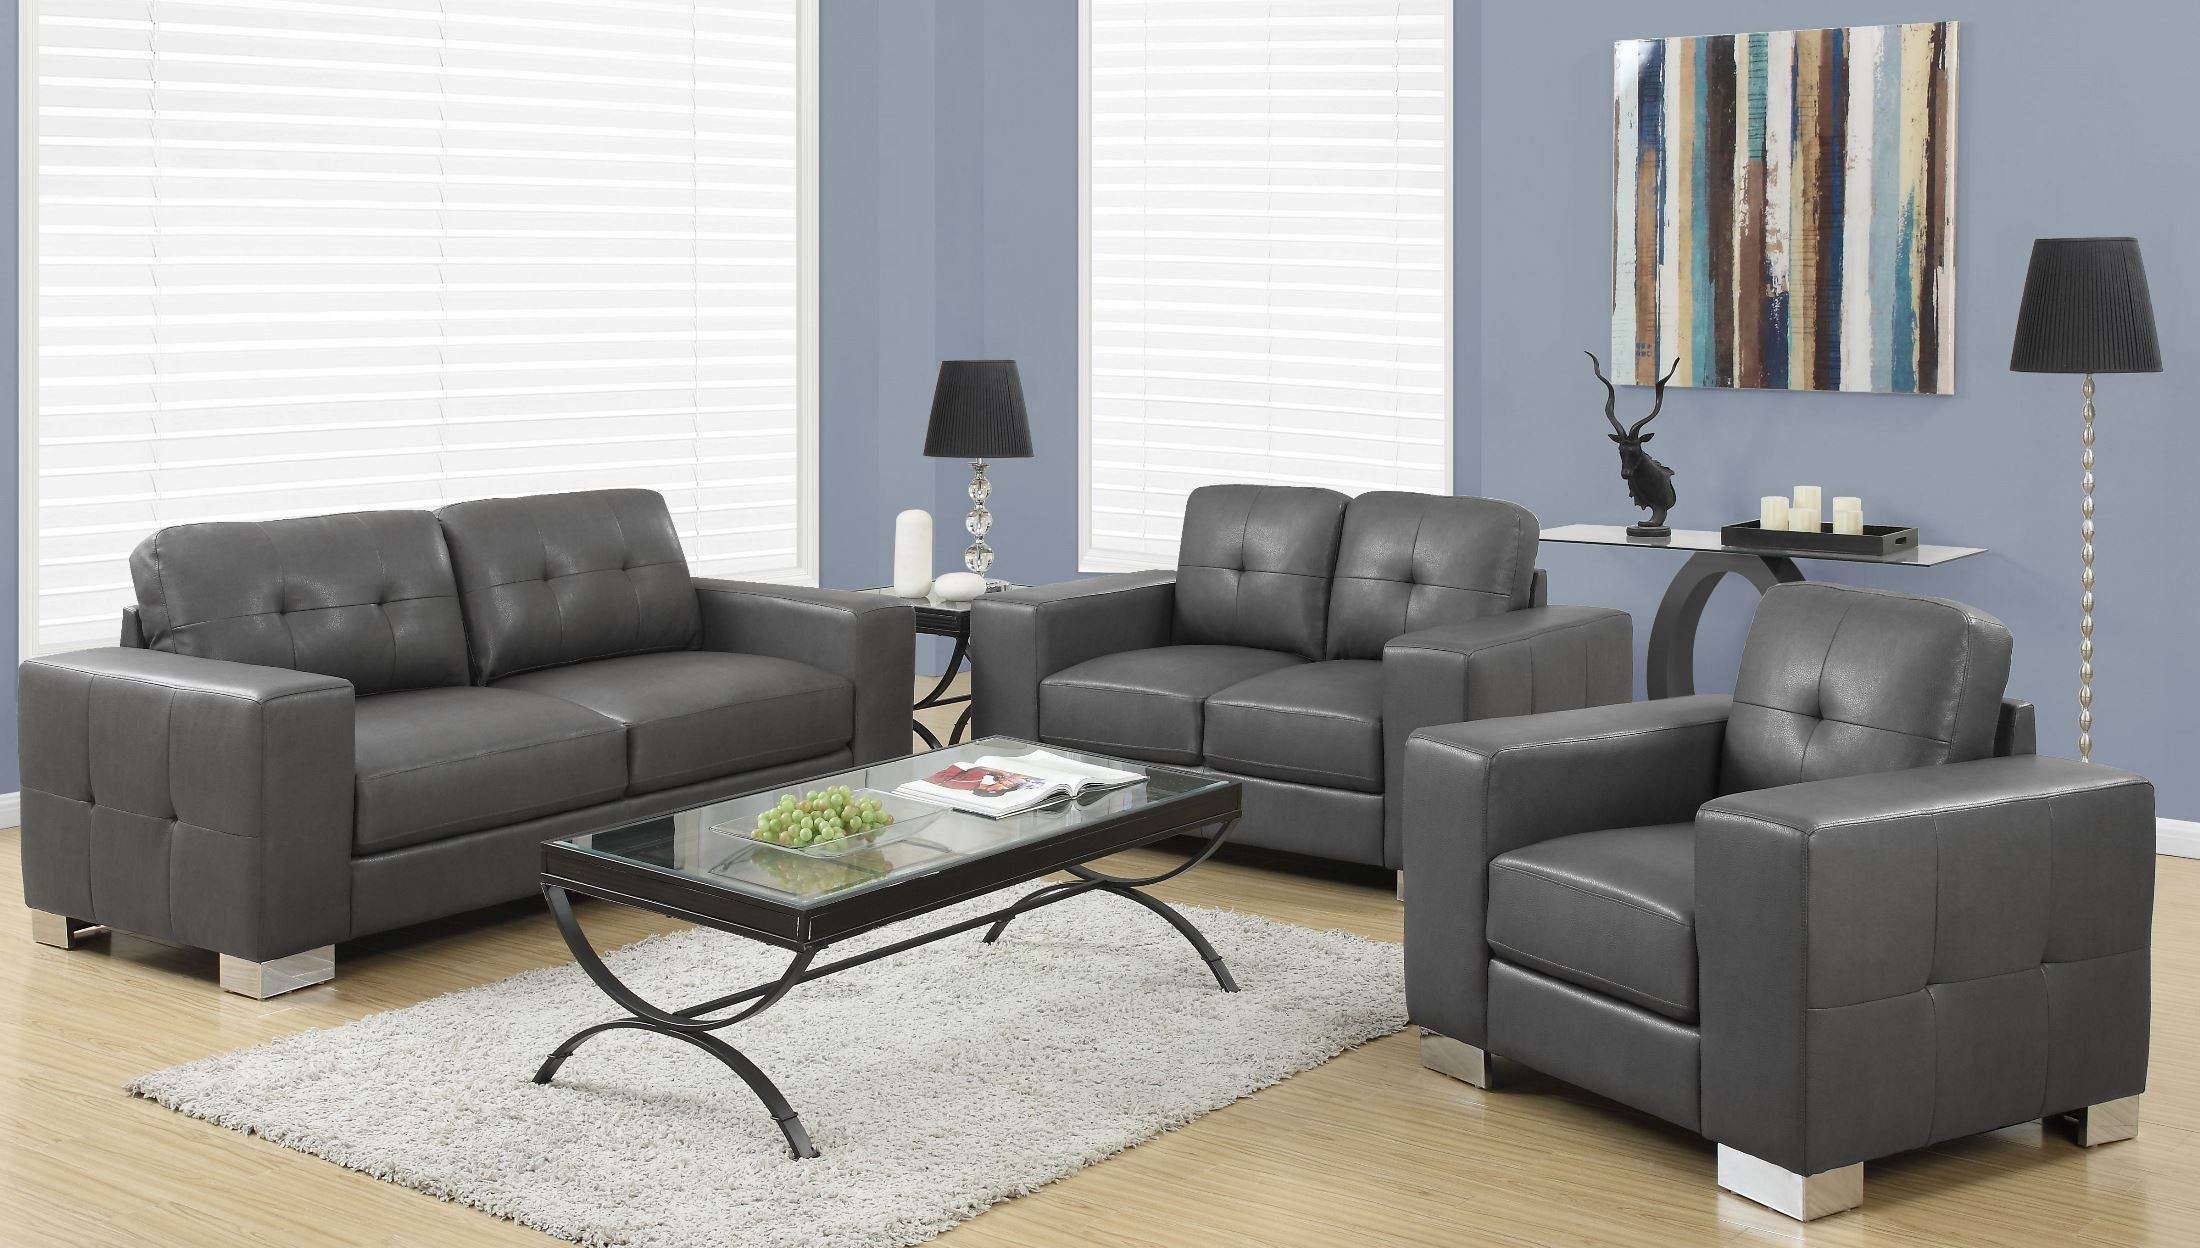 Grey Living Room Furniture Set : 8223GY Charcoal Gray Bonded Leather Living Room Set from ...